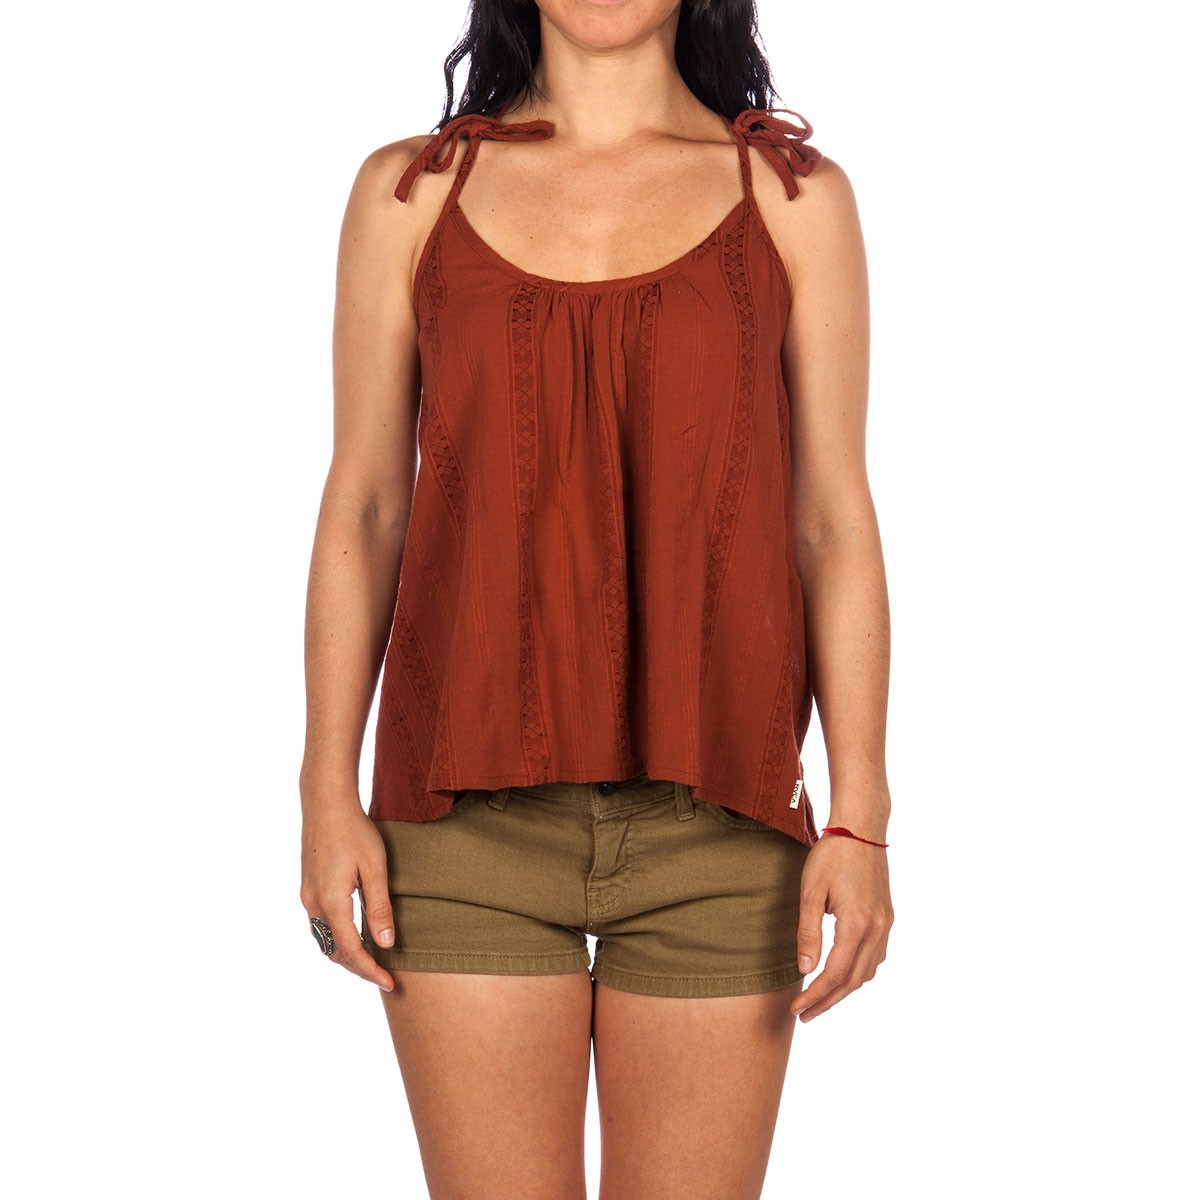 RVCA Between Lines Tank - Coconut Shell